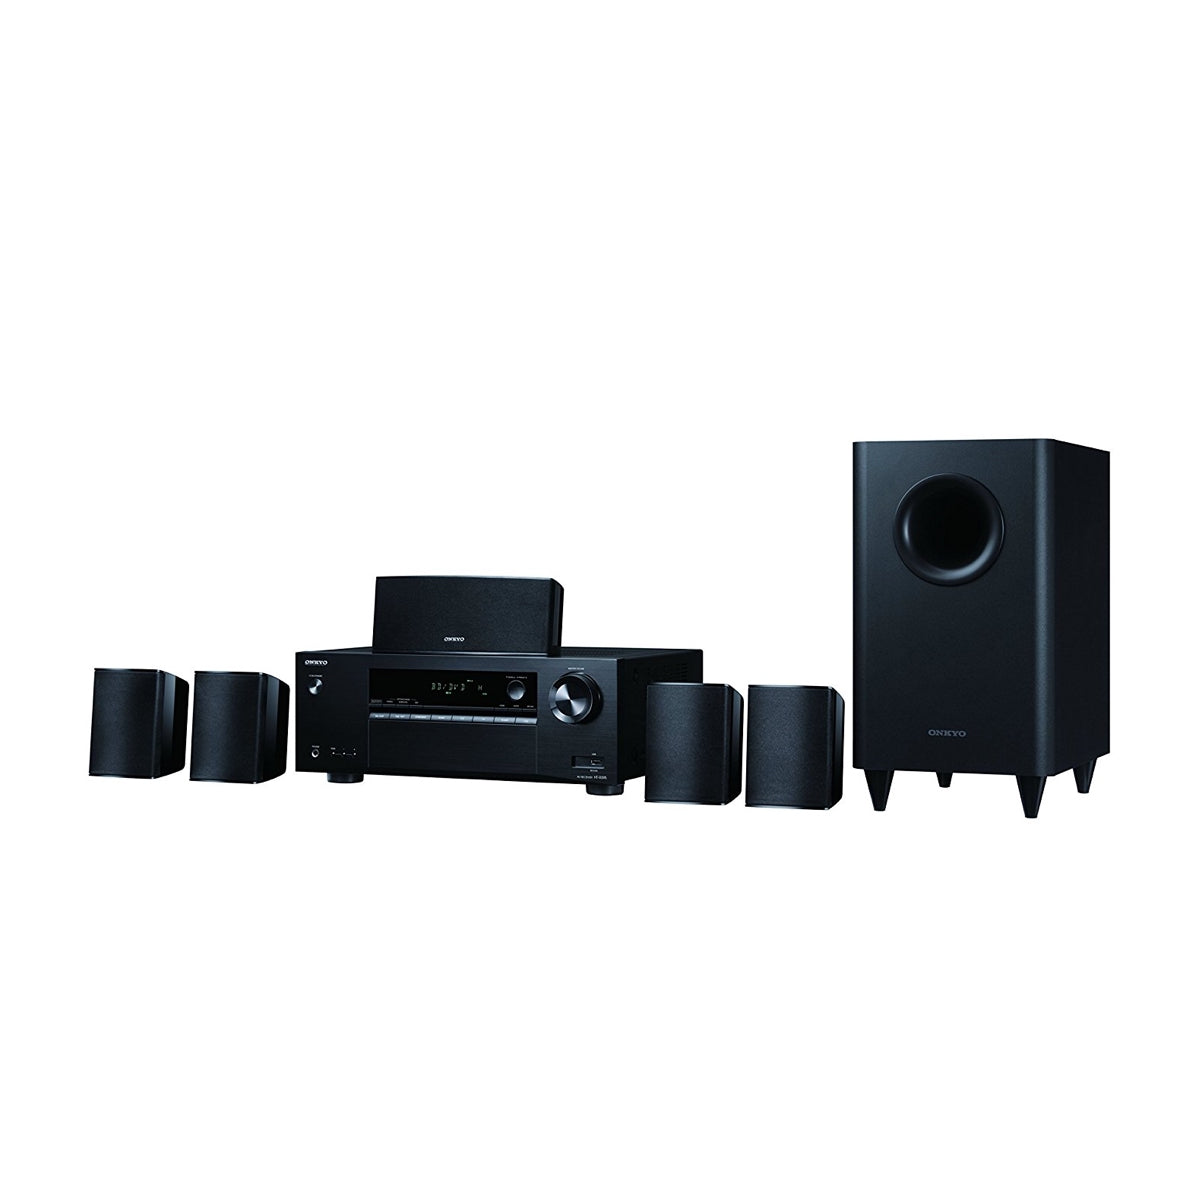 Onkyo HTS-3800 - 5.1 Channel Home Theatre System - AVStore.in